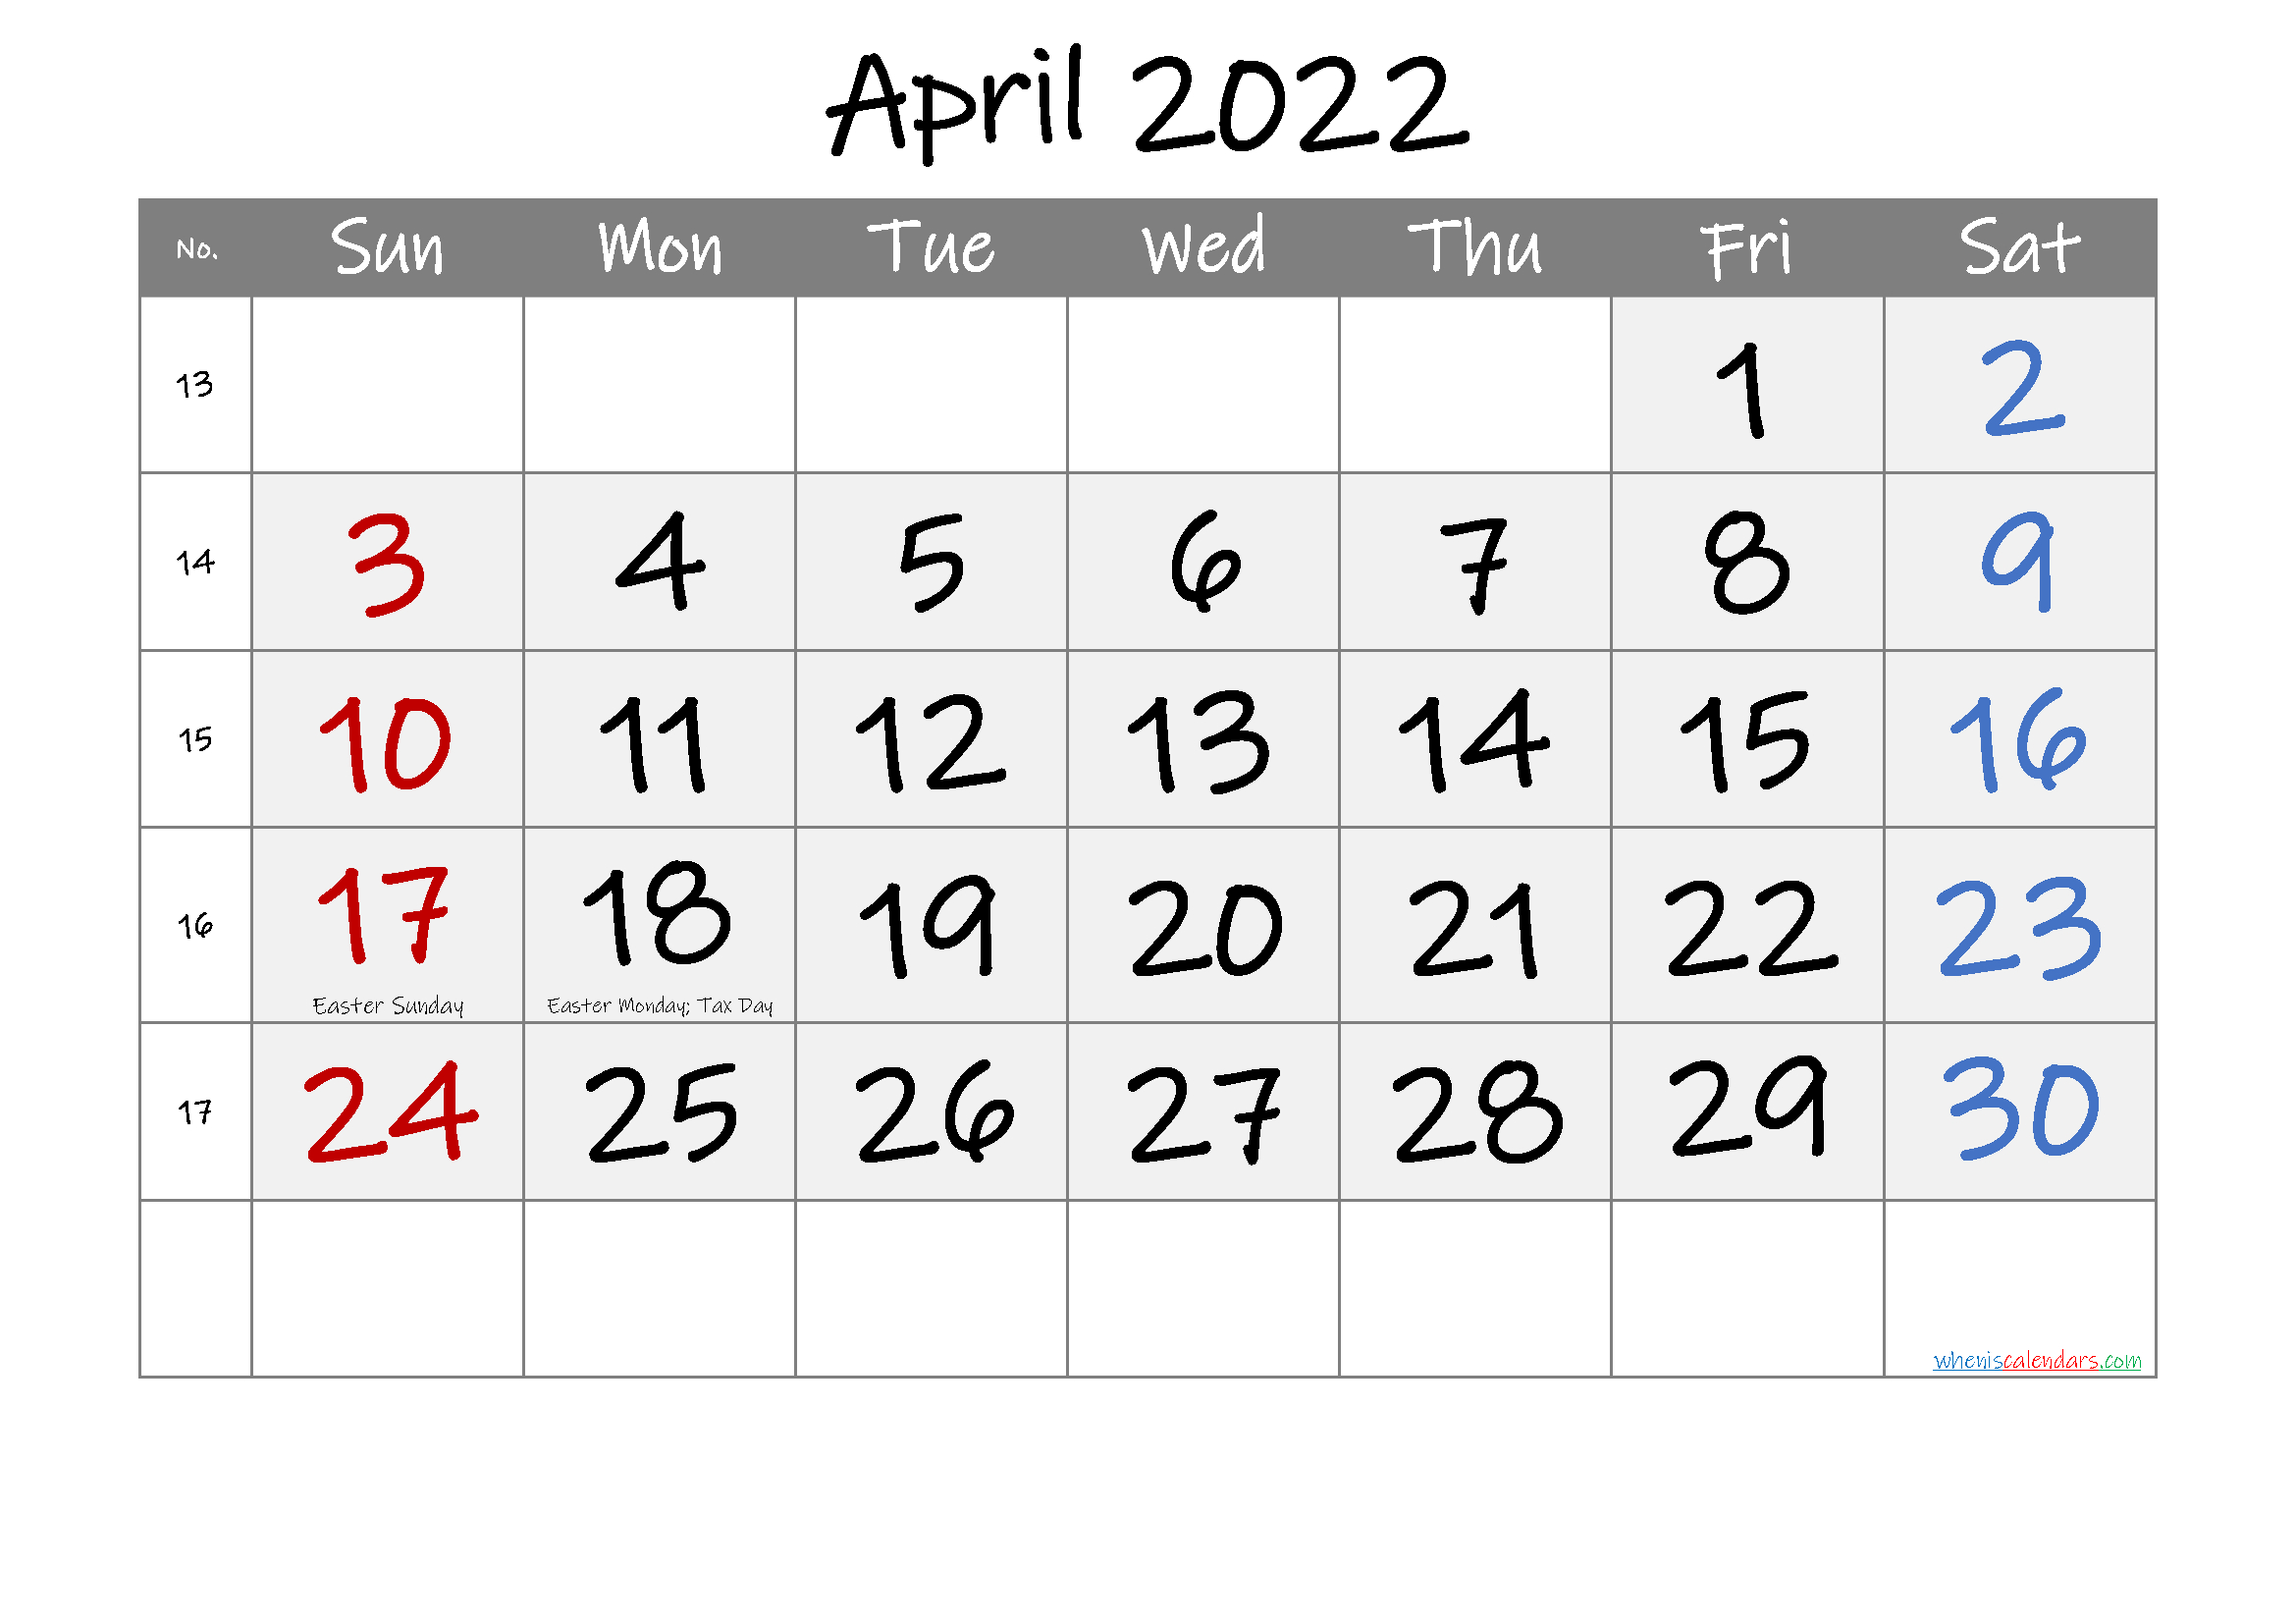 Free Printable April 2021 Calendar With Holidays intended for Calendar 2022 April Print Now Graphics